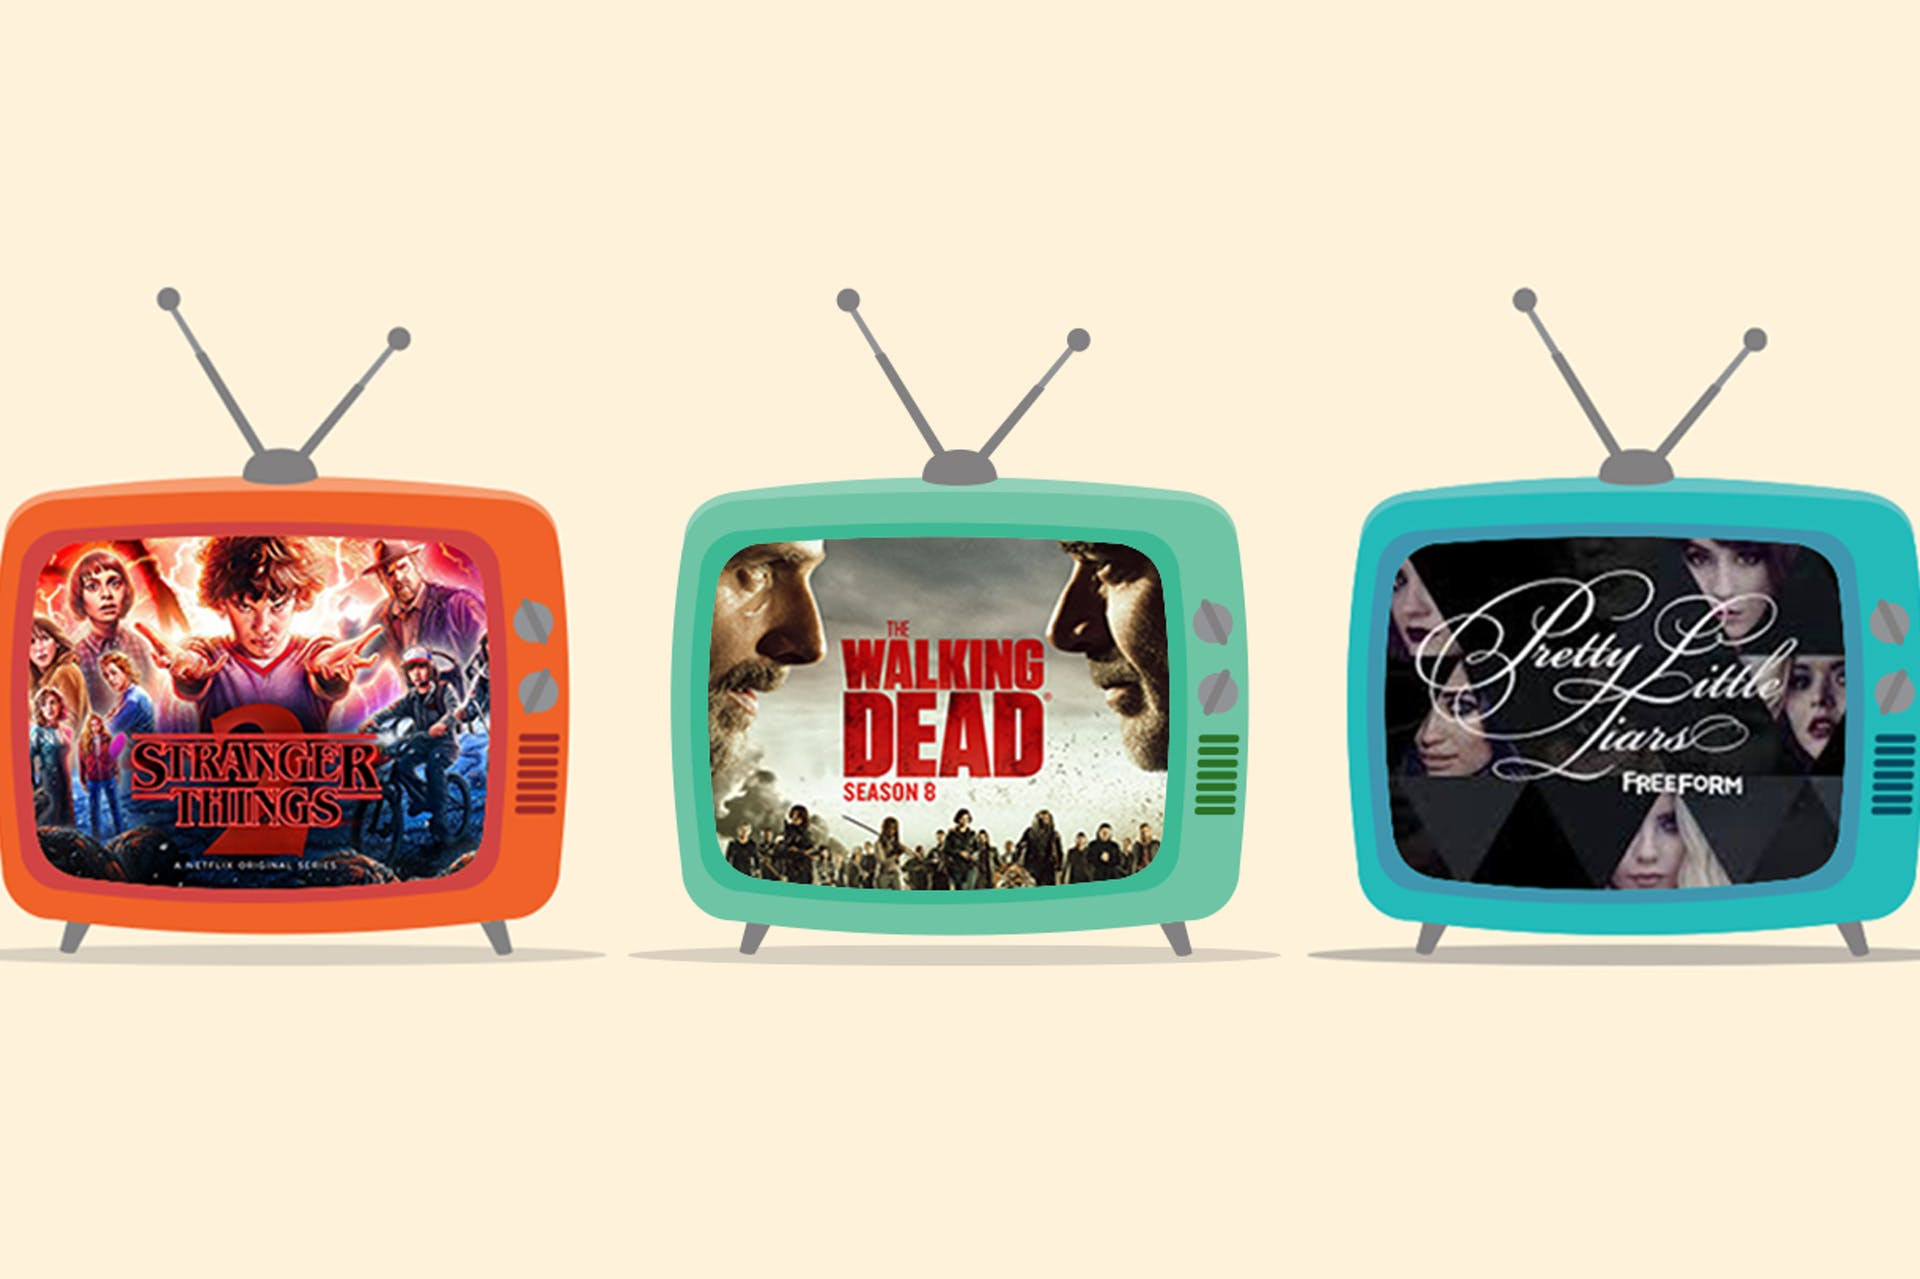 Three illustrated TVs showing these TV shows respectively (Left to Right): Red TV: Stranger Things; Green TV; The Walking Dead; Blue TV: Pretty Little Liars